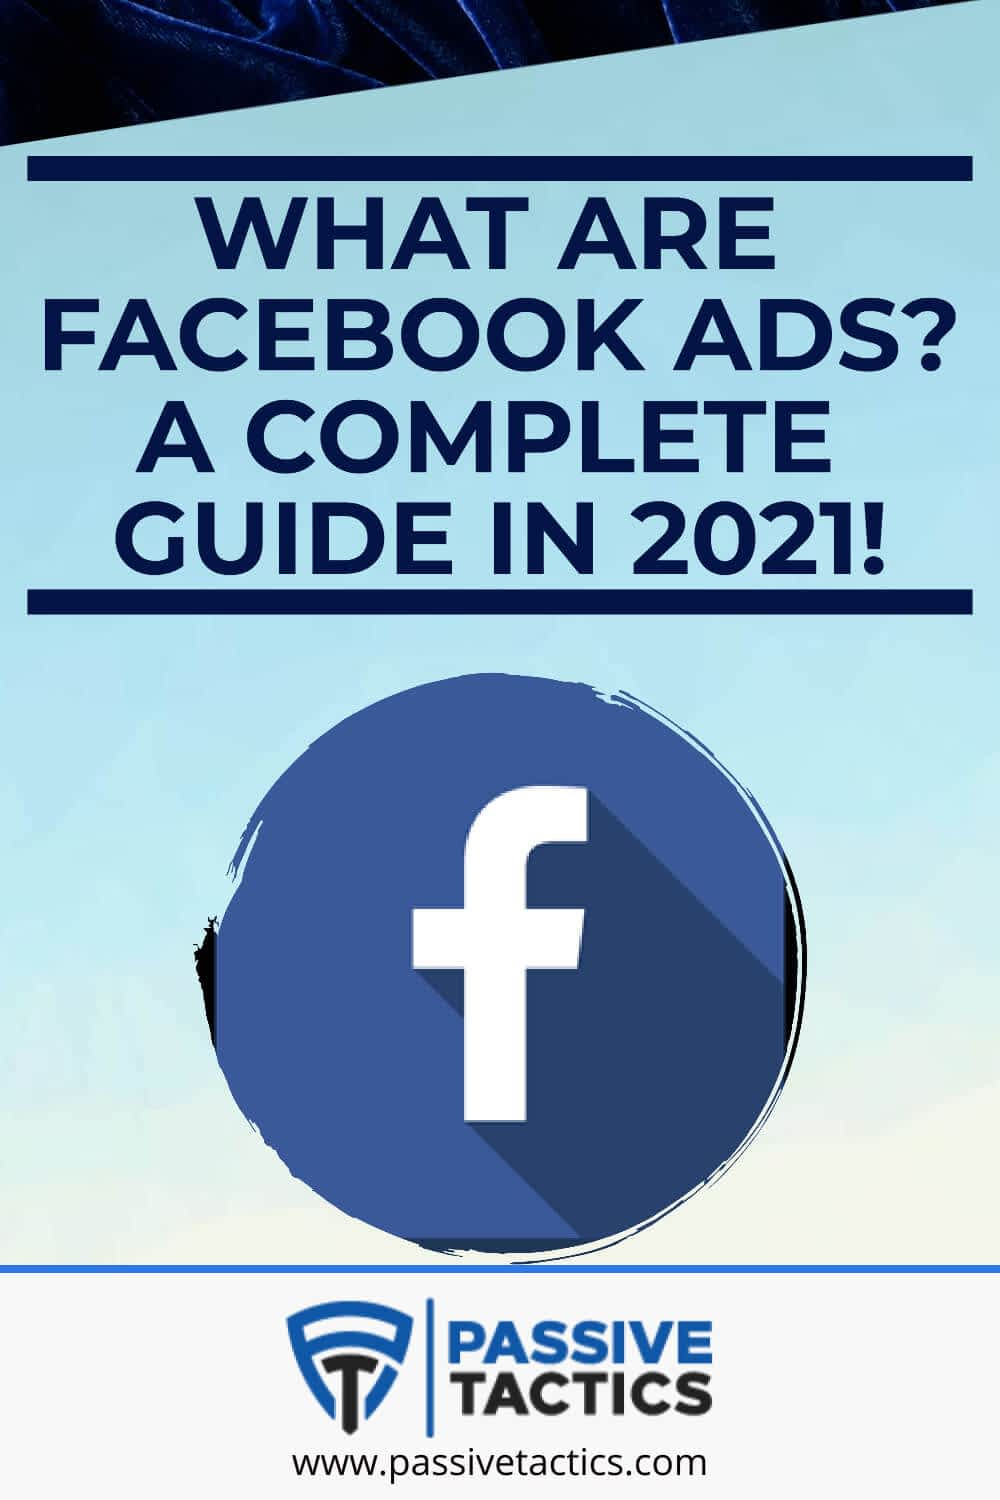 What Are Facebook Ads? A Complete Guide In 2021!